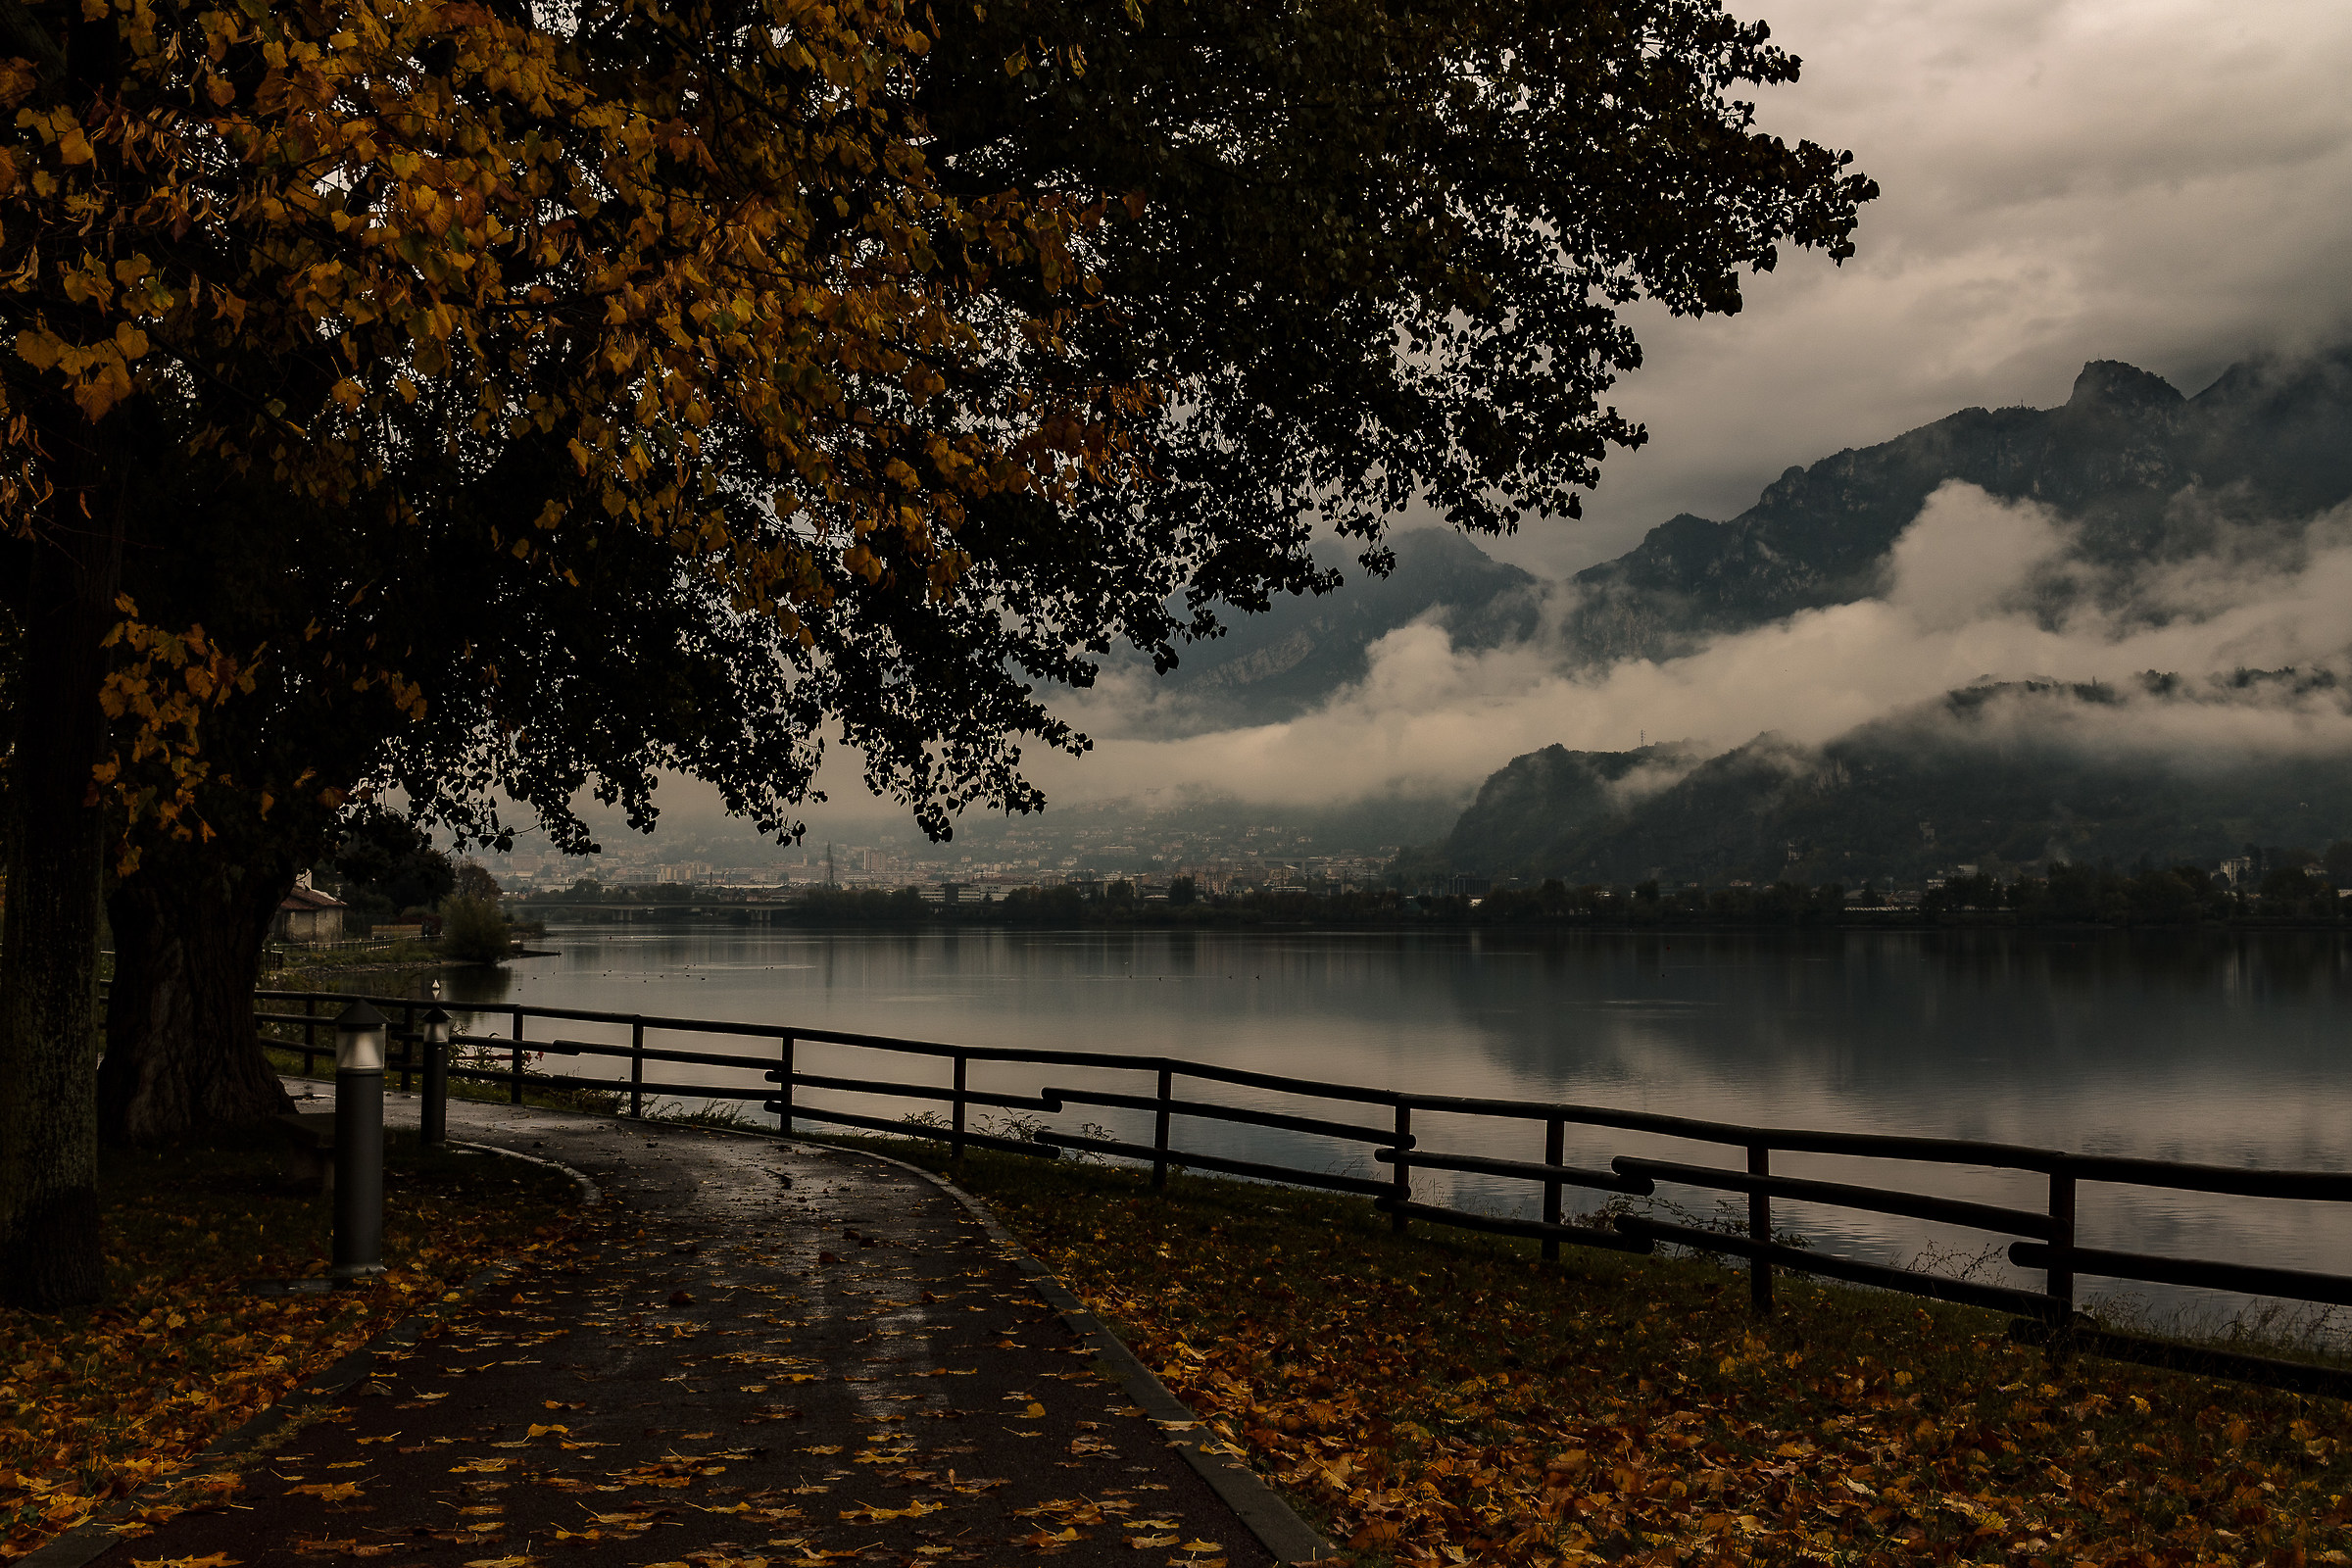 Autumn of that branch of Lake Como ......